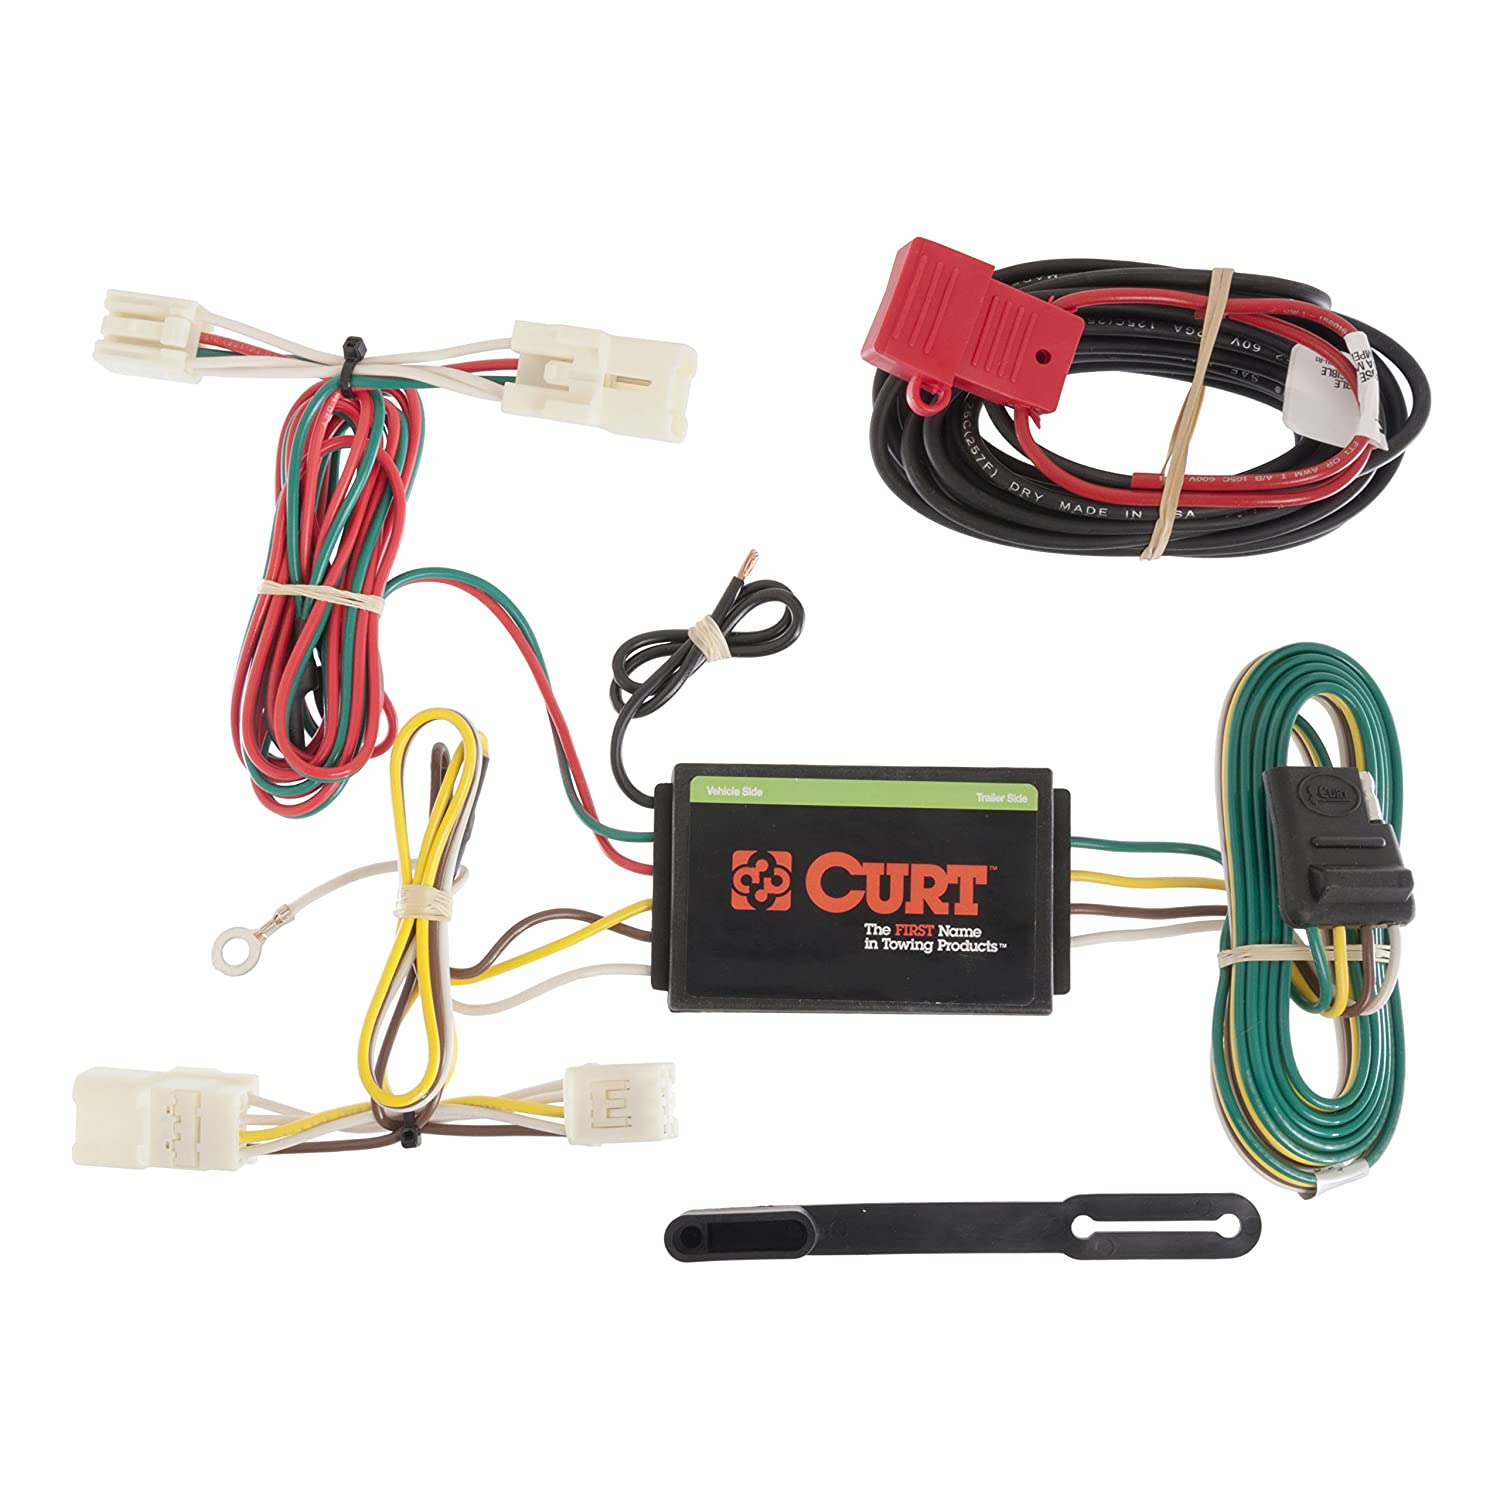 817l7jcQOtL._SL1500_ amazon com curt 56165 custom wiring harness automotive hitch wiring harness at creativeand.co